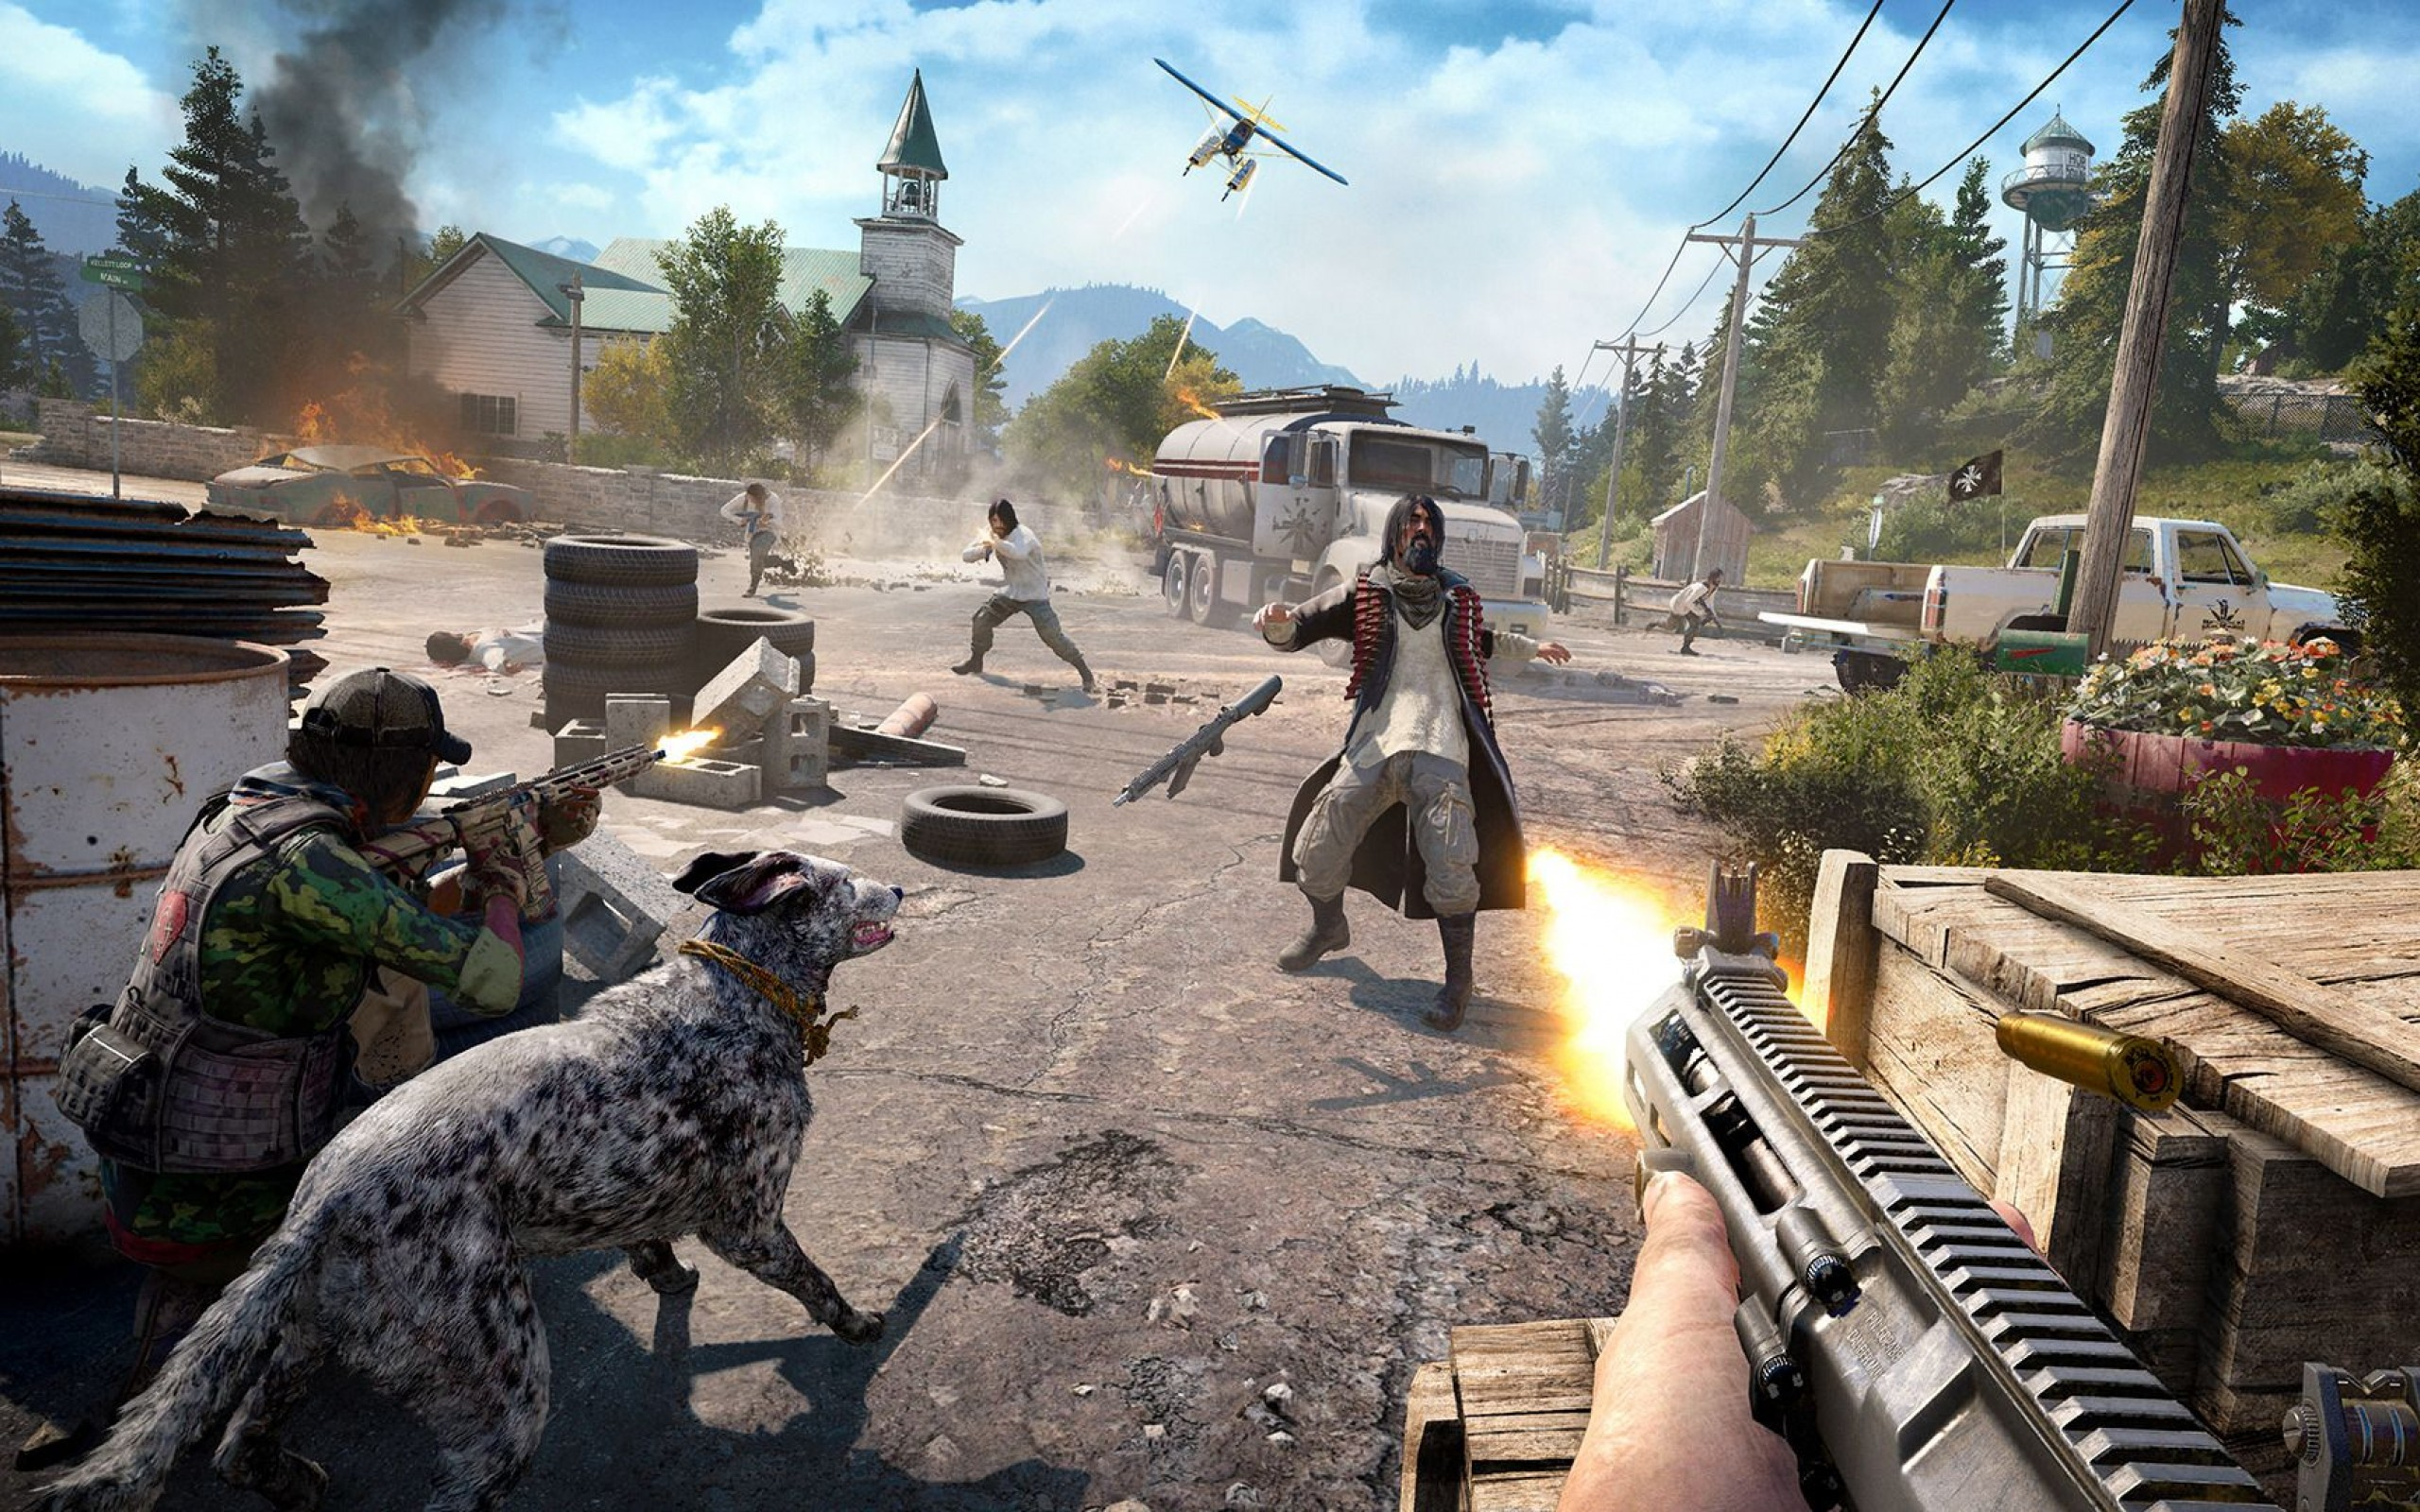 16 Far Cry 5 1387370 Hd Wallpaper Backgrounds Download